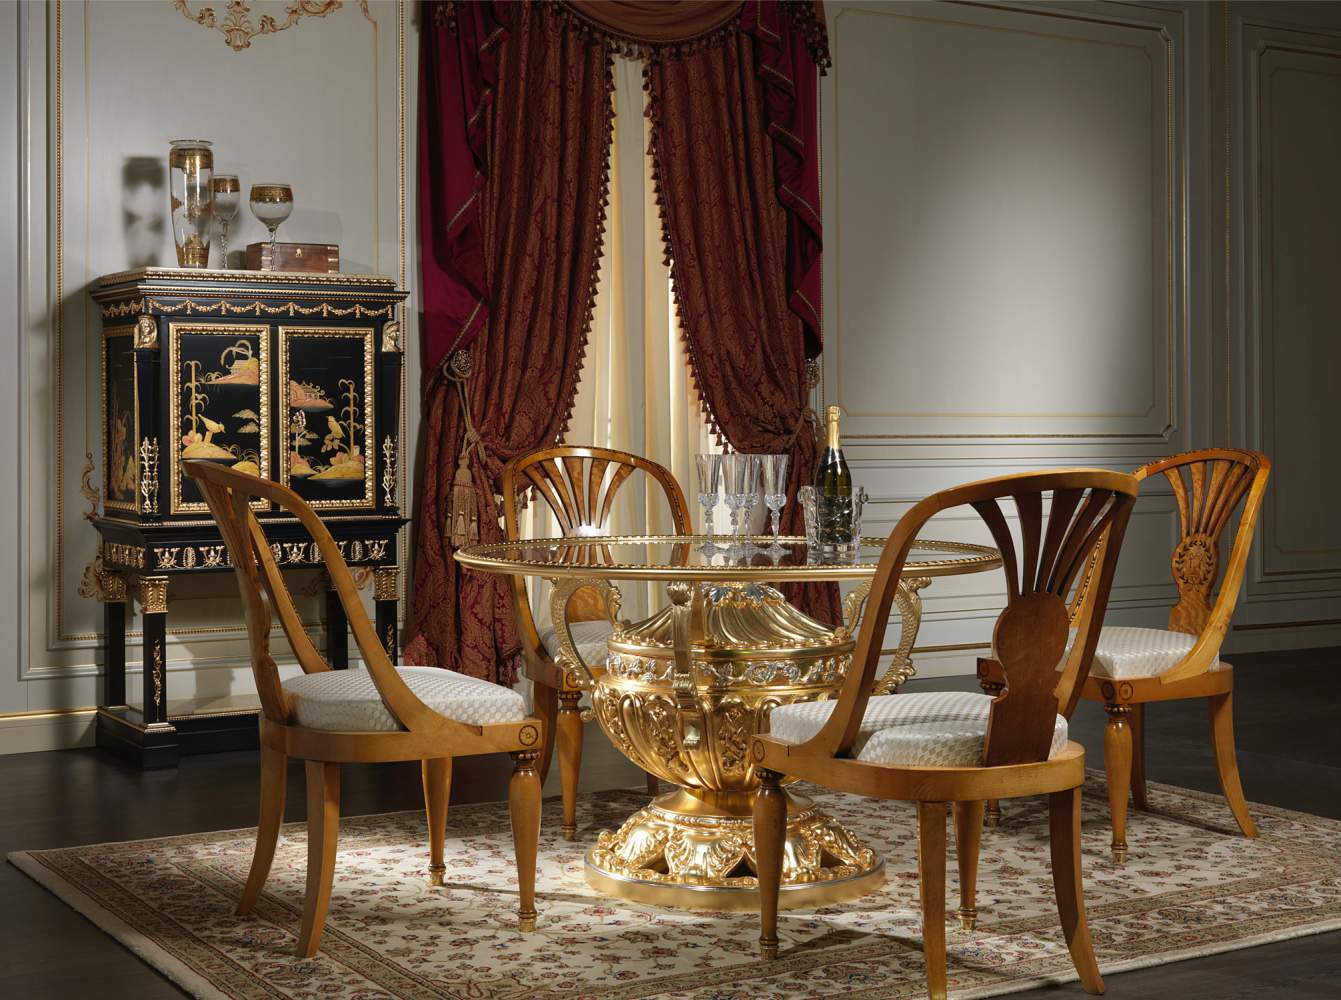 Luxury dining room made in Italy